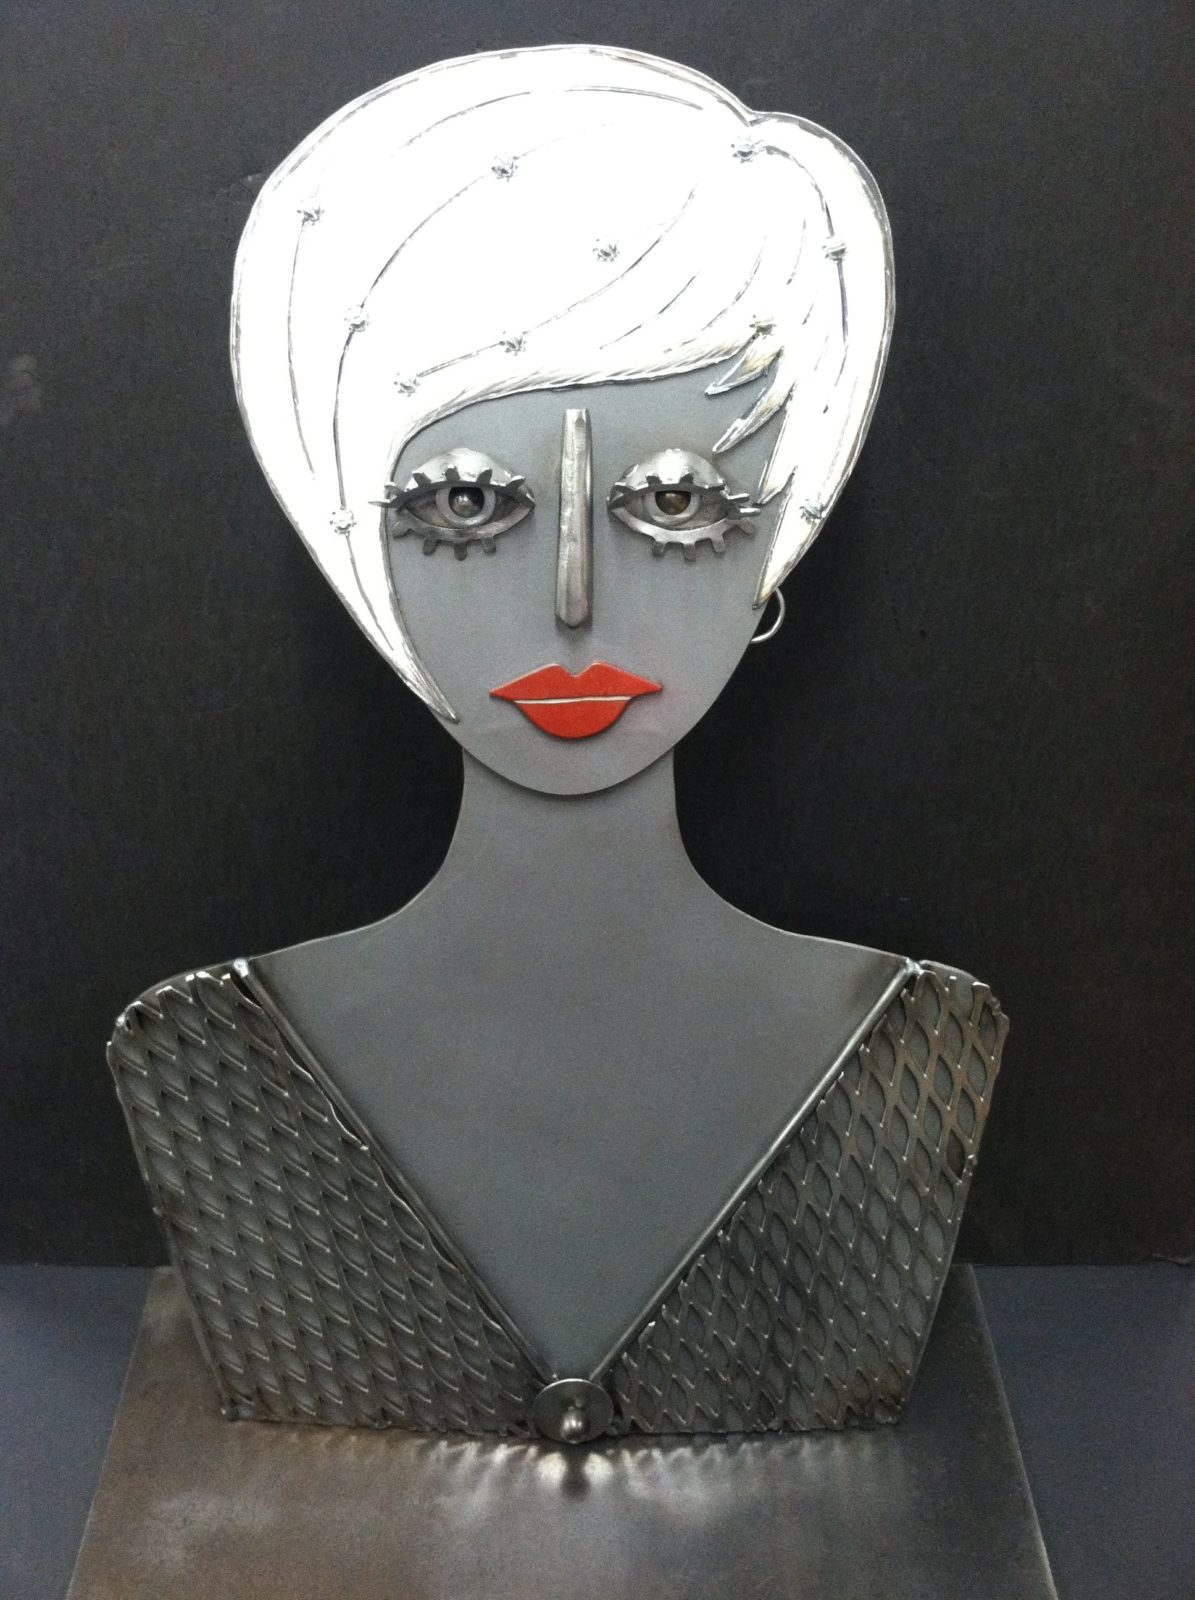 Liza metal sculpture of a woman